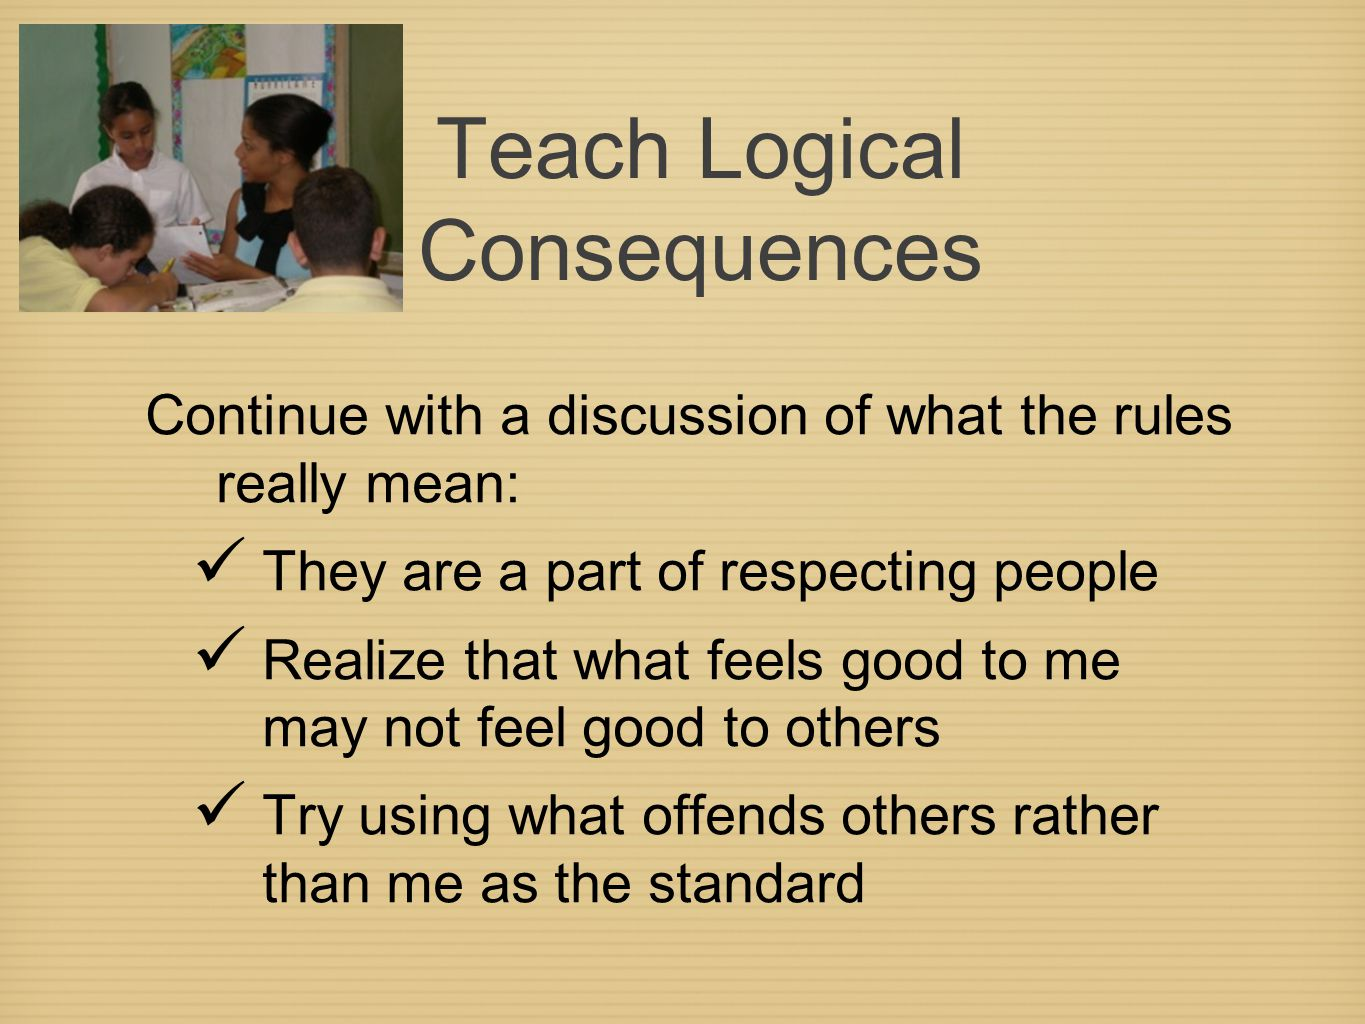 Teach Logical Consequences Continue with a discussion of what the rules really mean: They are a part of respecting people Realize that what feels good to me may not feel good to others Try using what offends others rather than me as the standard